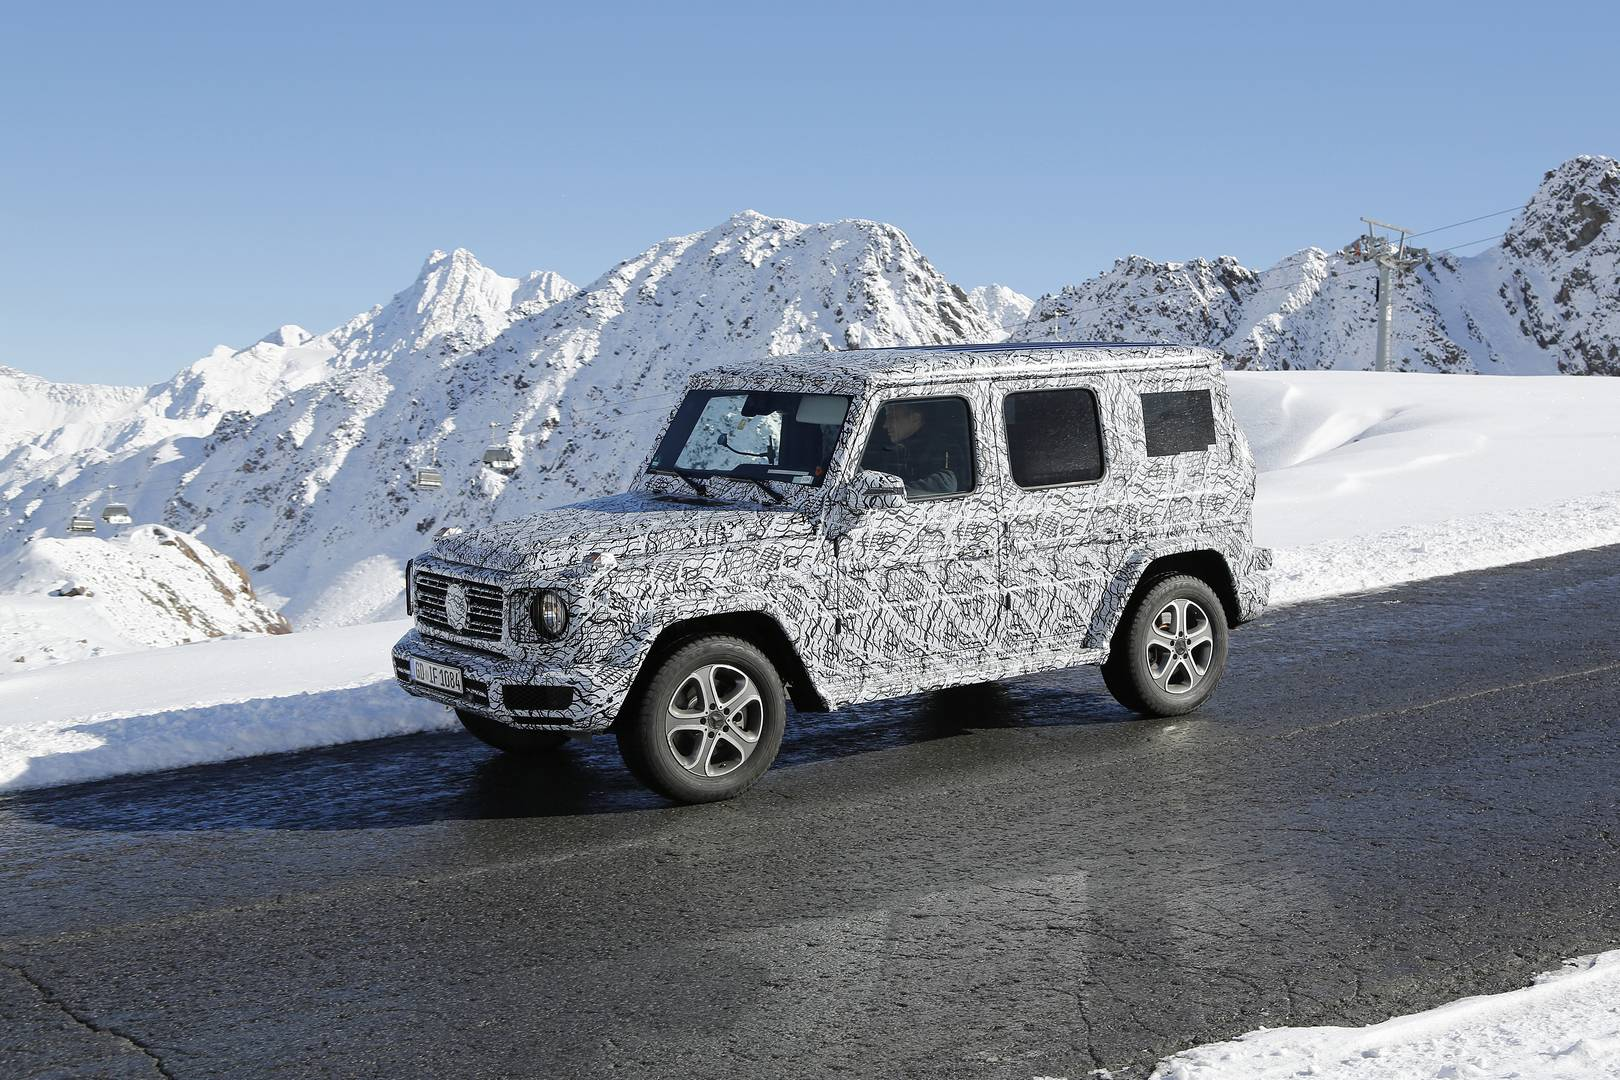 2017 mercedes benz g class spy shots in the alps gtspirit for 2017 mercedes benz g class